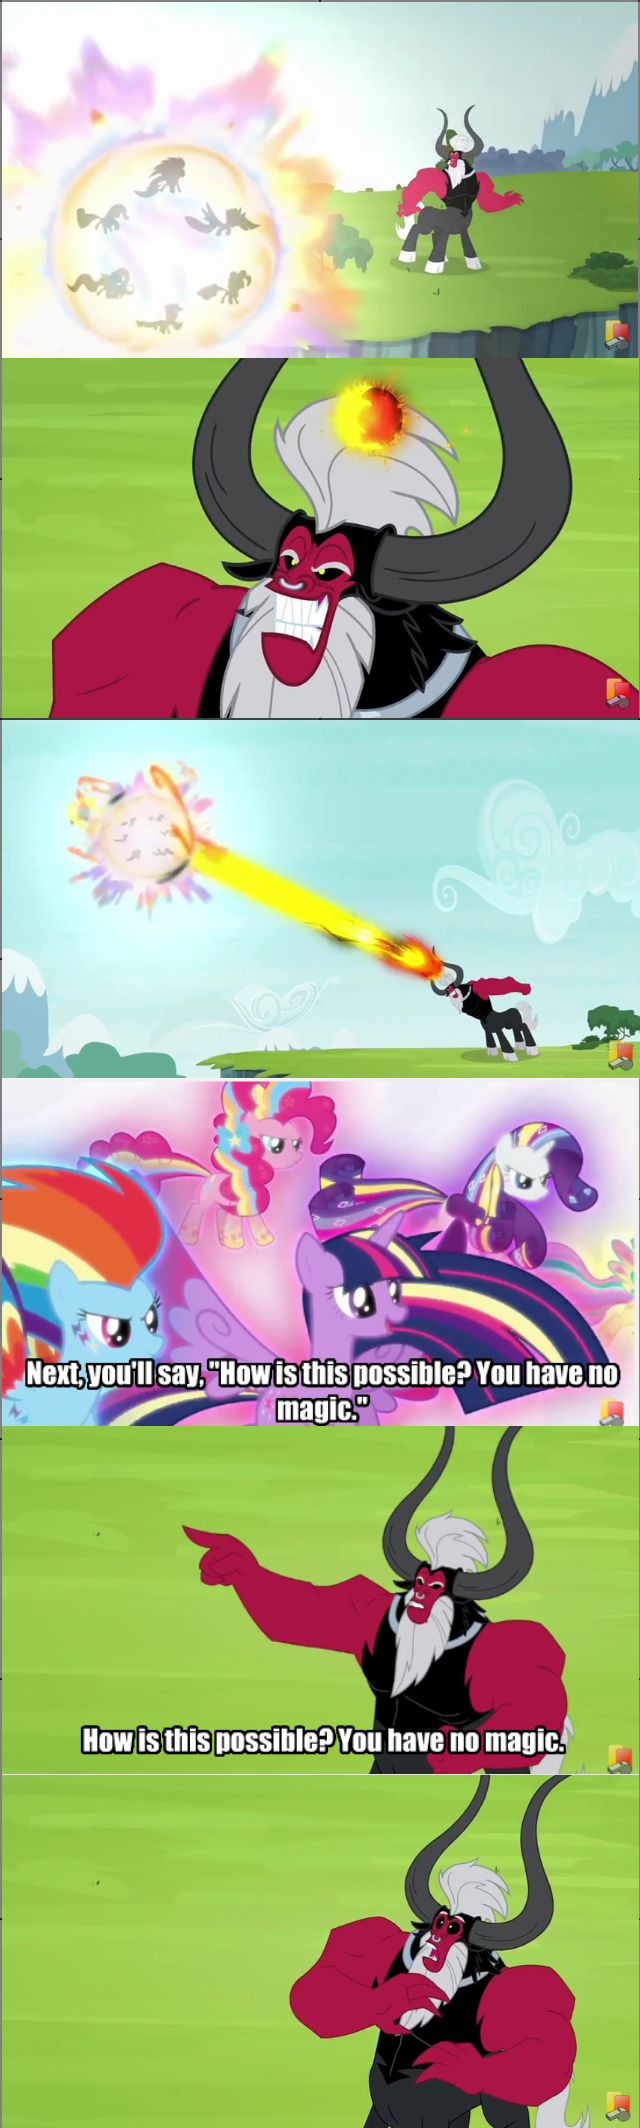 twilight sparkle,tirek,rainbow power,twilight's kingdom,mind reading